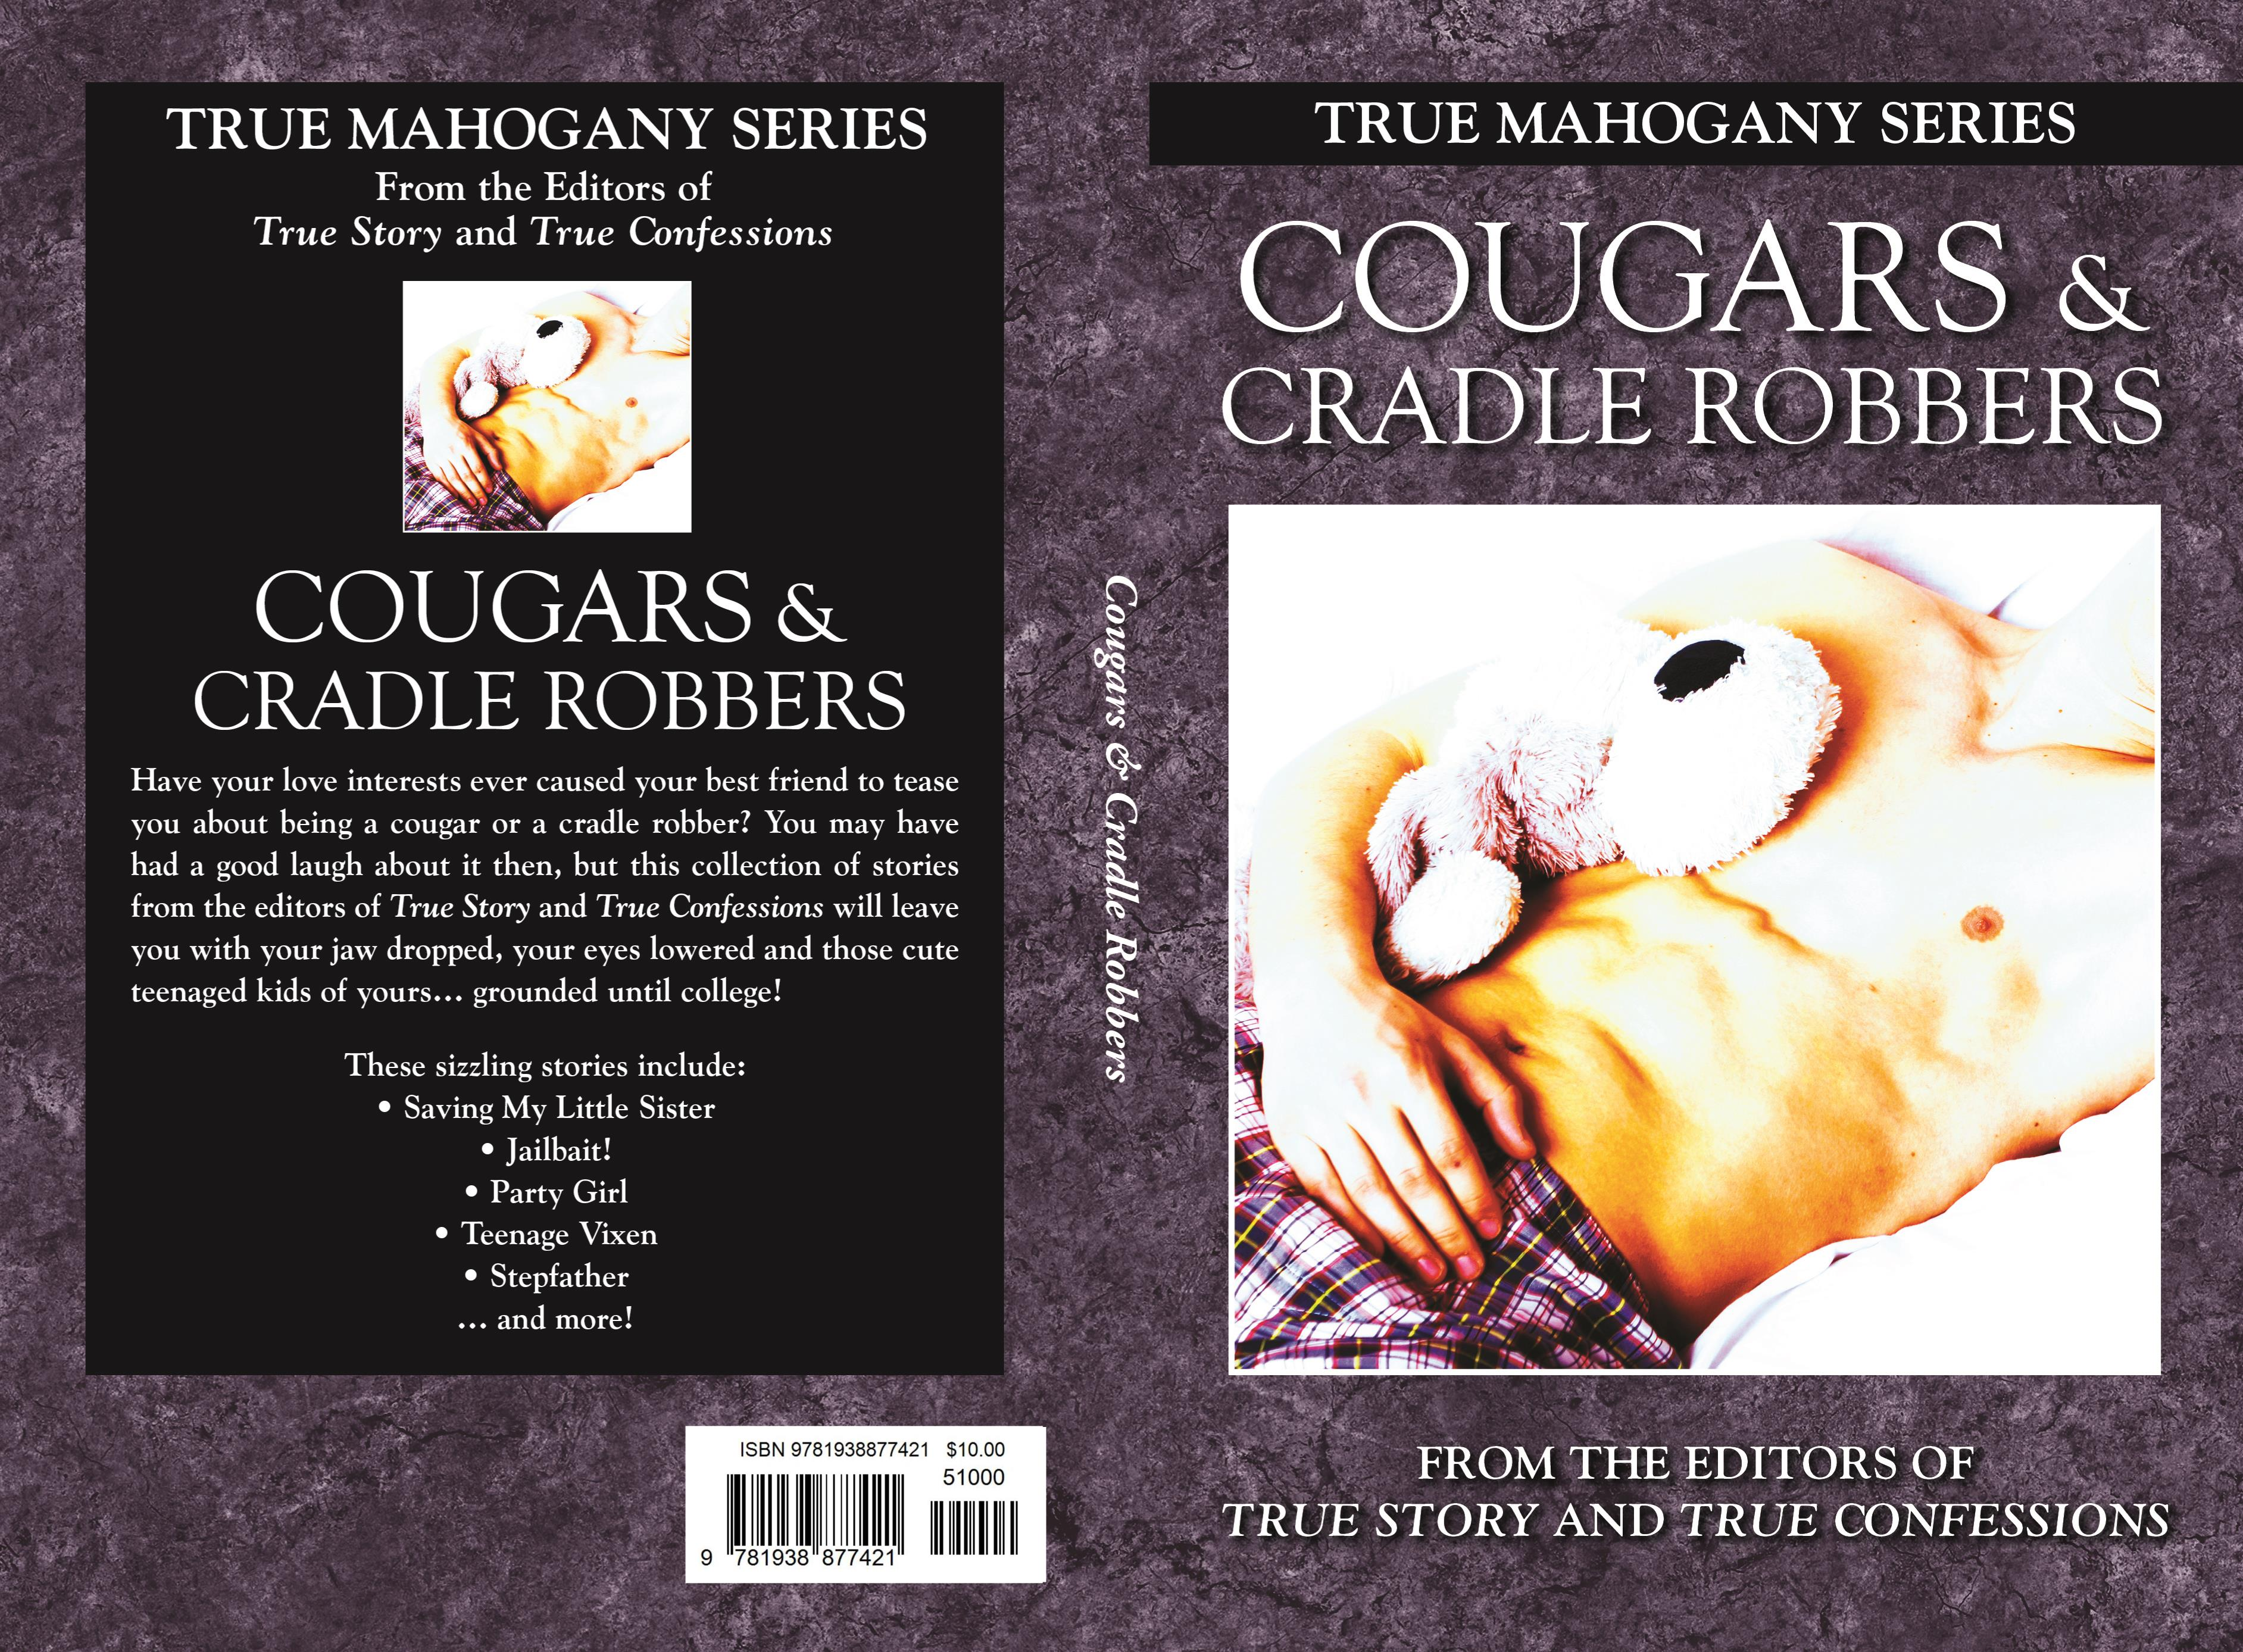 Cougars and Cradle Robbers cover image